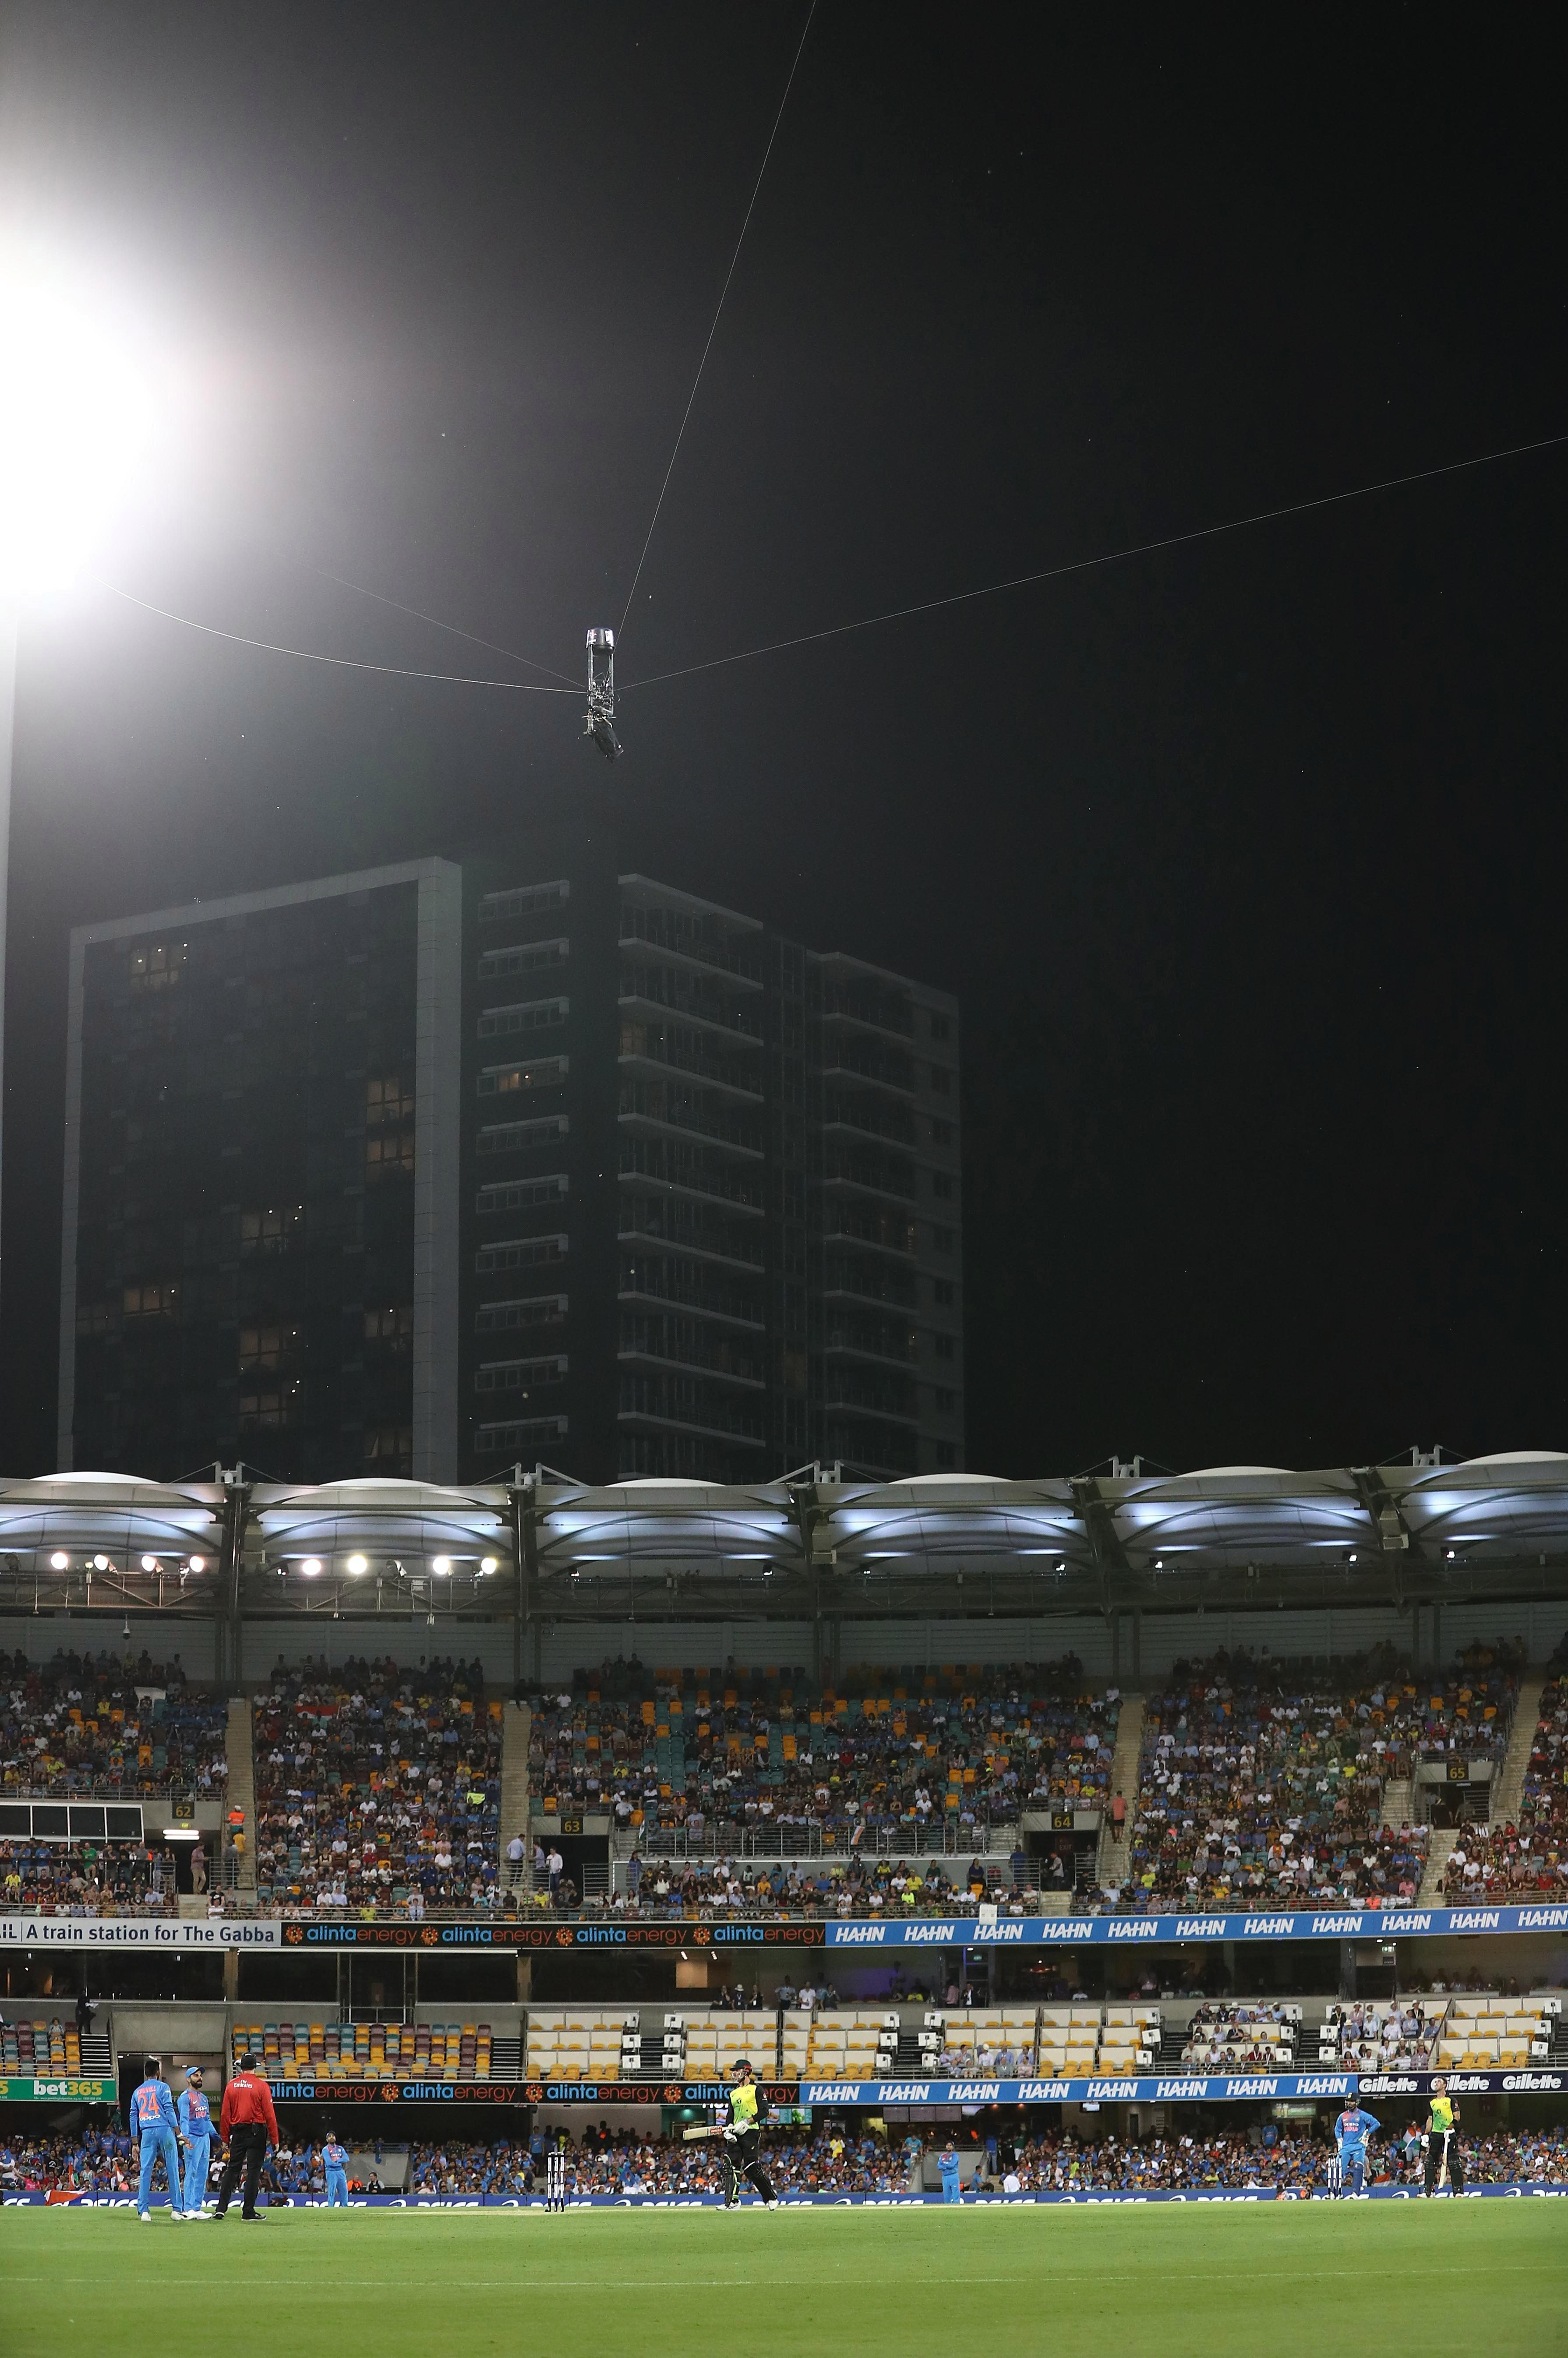 The Spider cam is suspended on a series of cables above the field